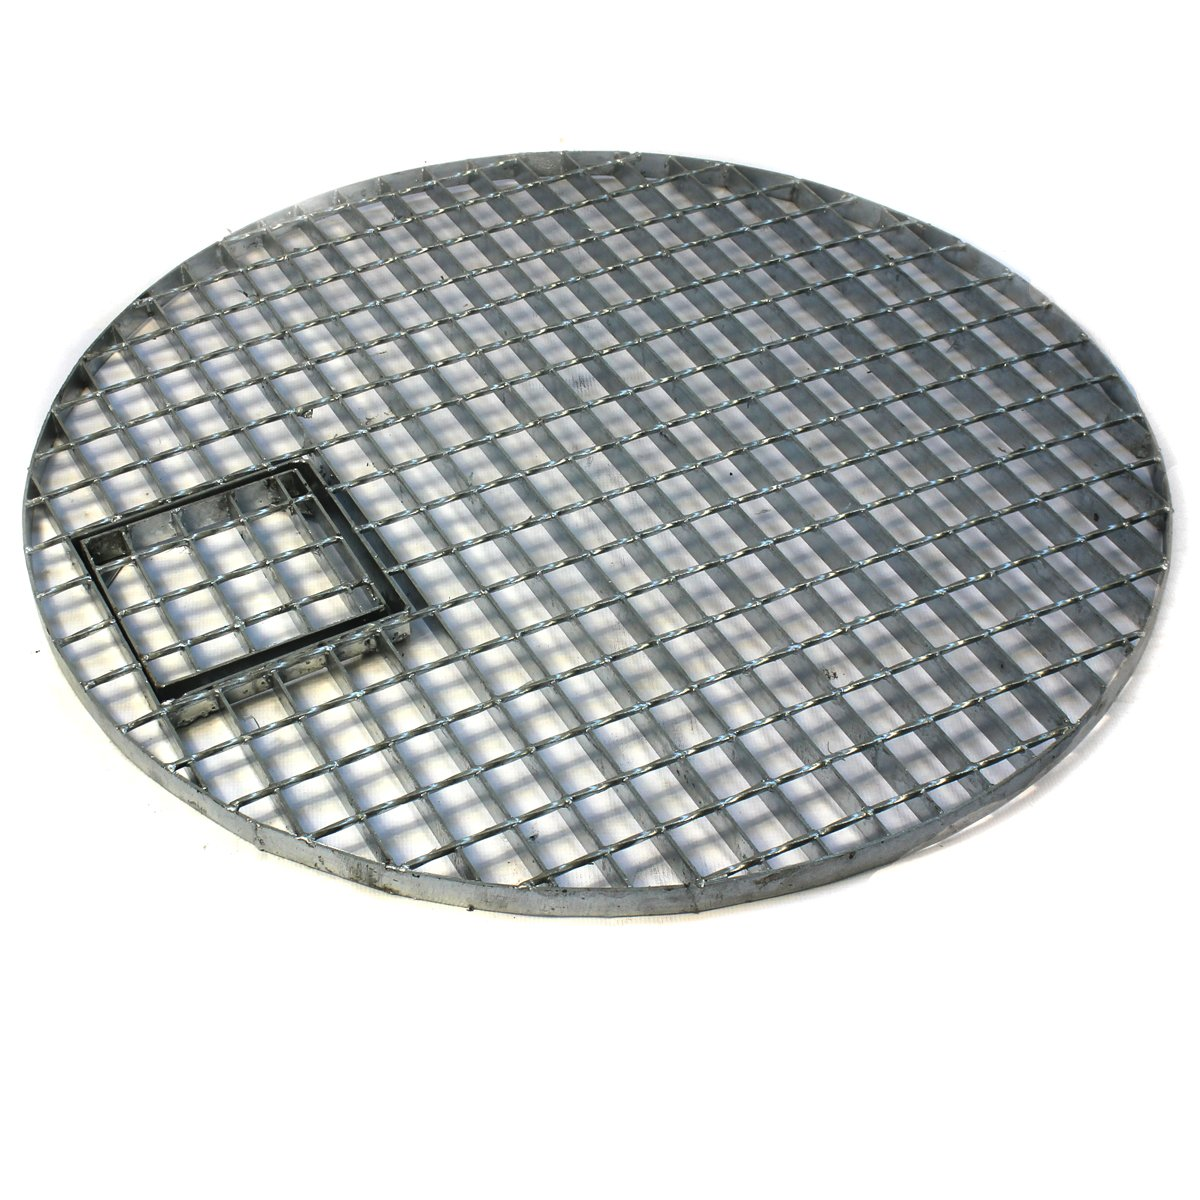 Direct Global Trading 70cm Round Galvanised Water Feature Grid Extra Strong Ideal for Stone Granite